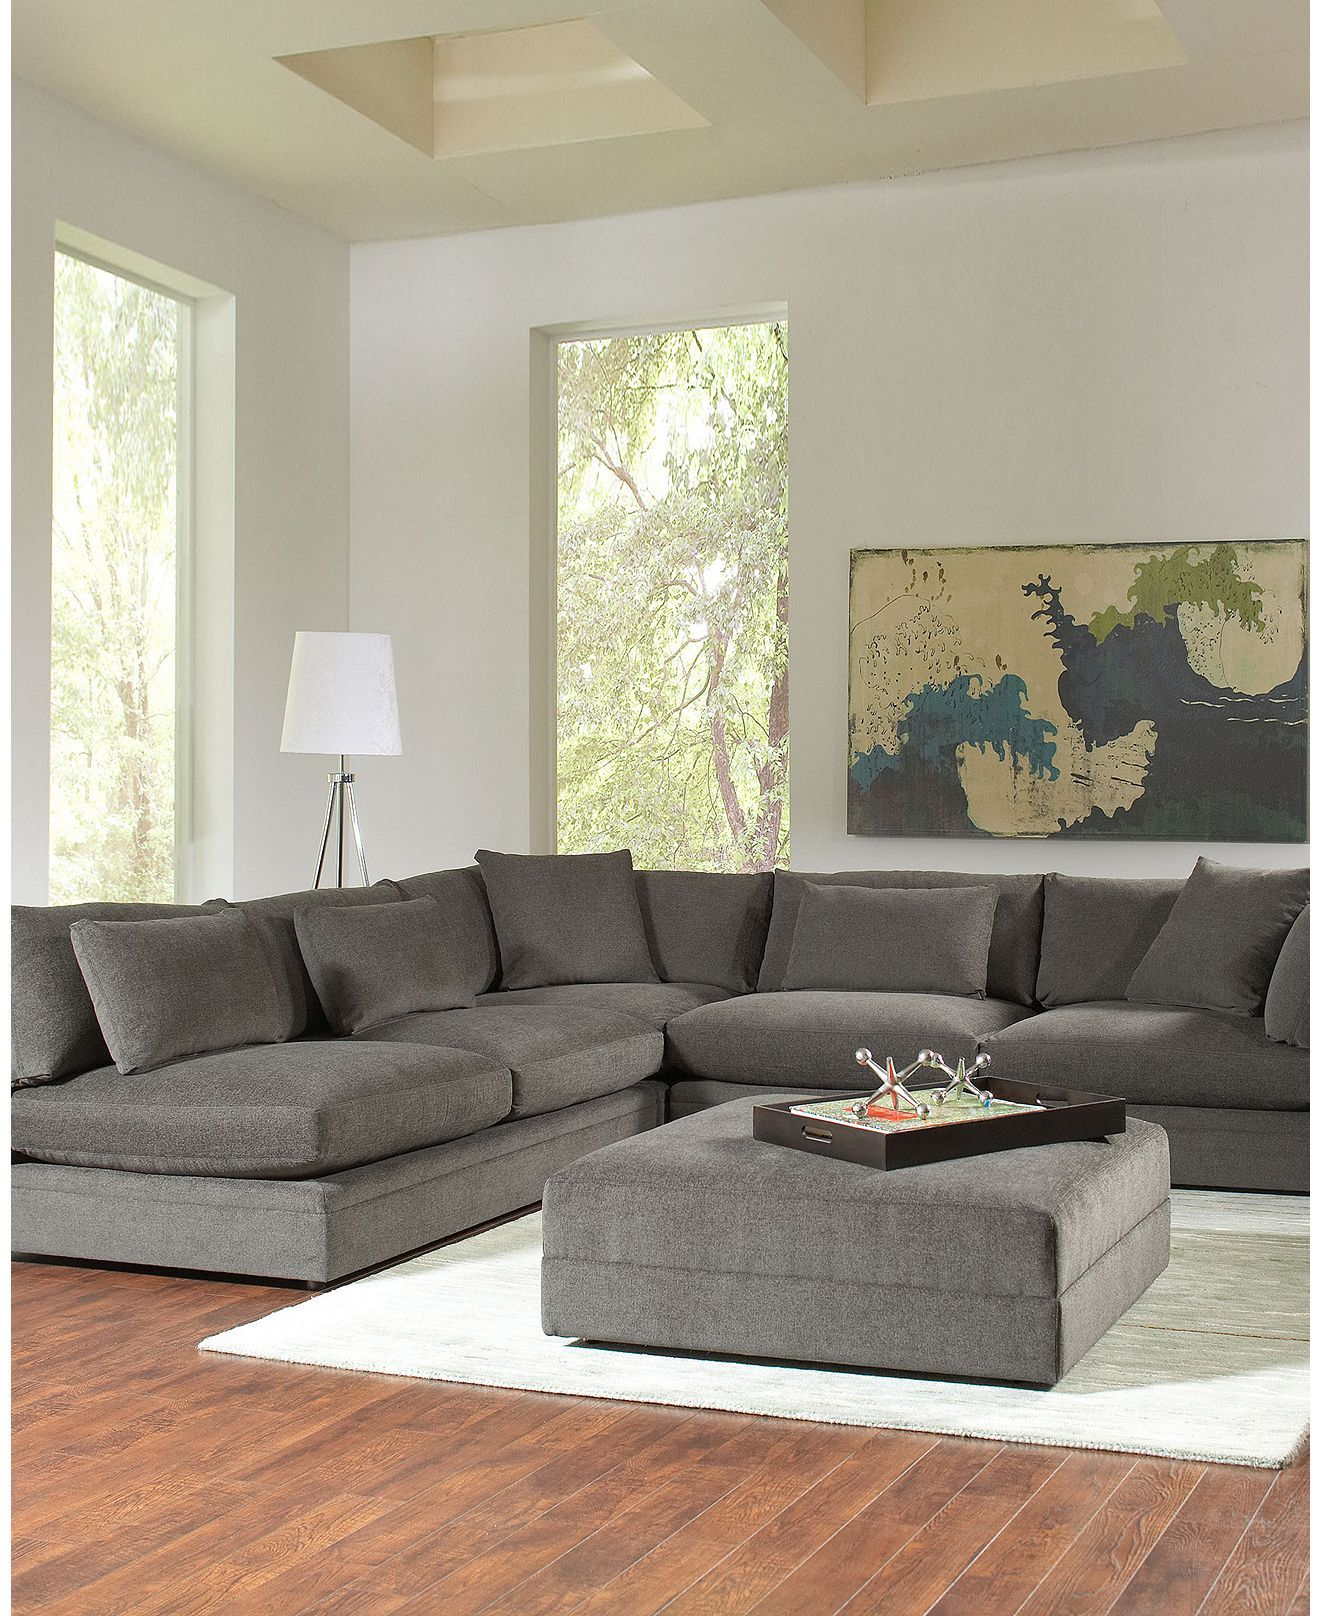 Dana Living Room Furniture Sets & Pieces Sectionals furniture